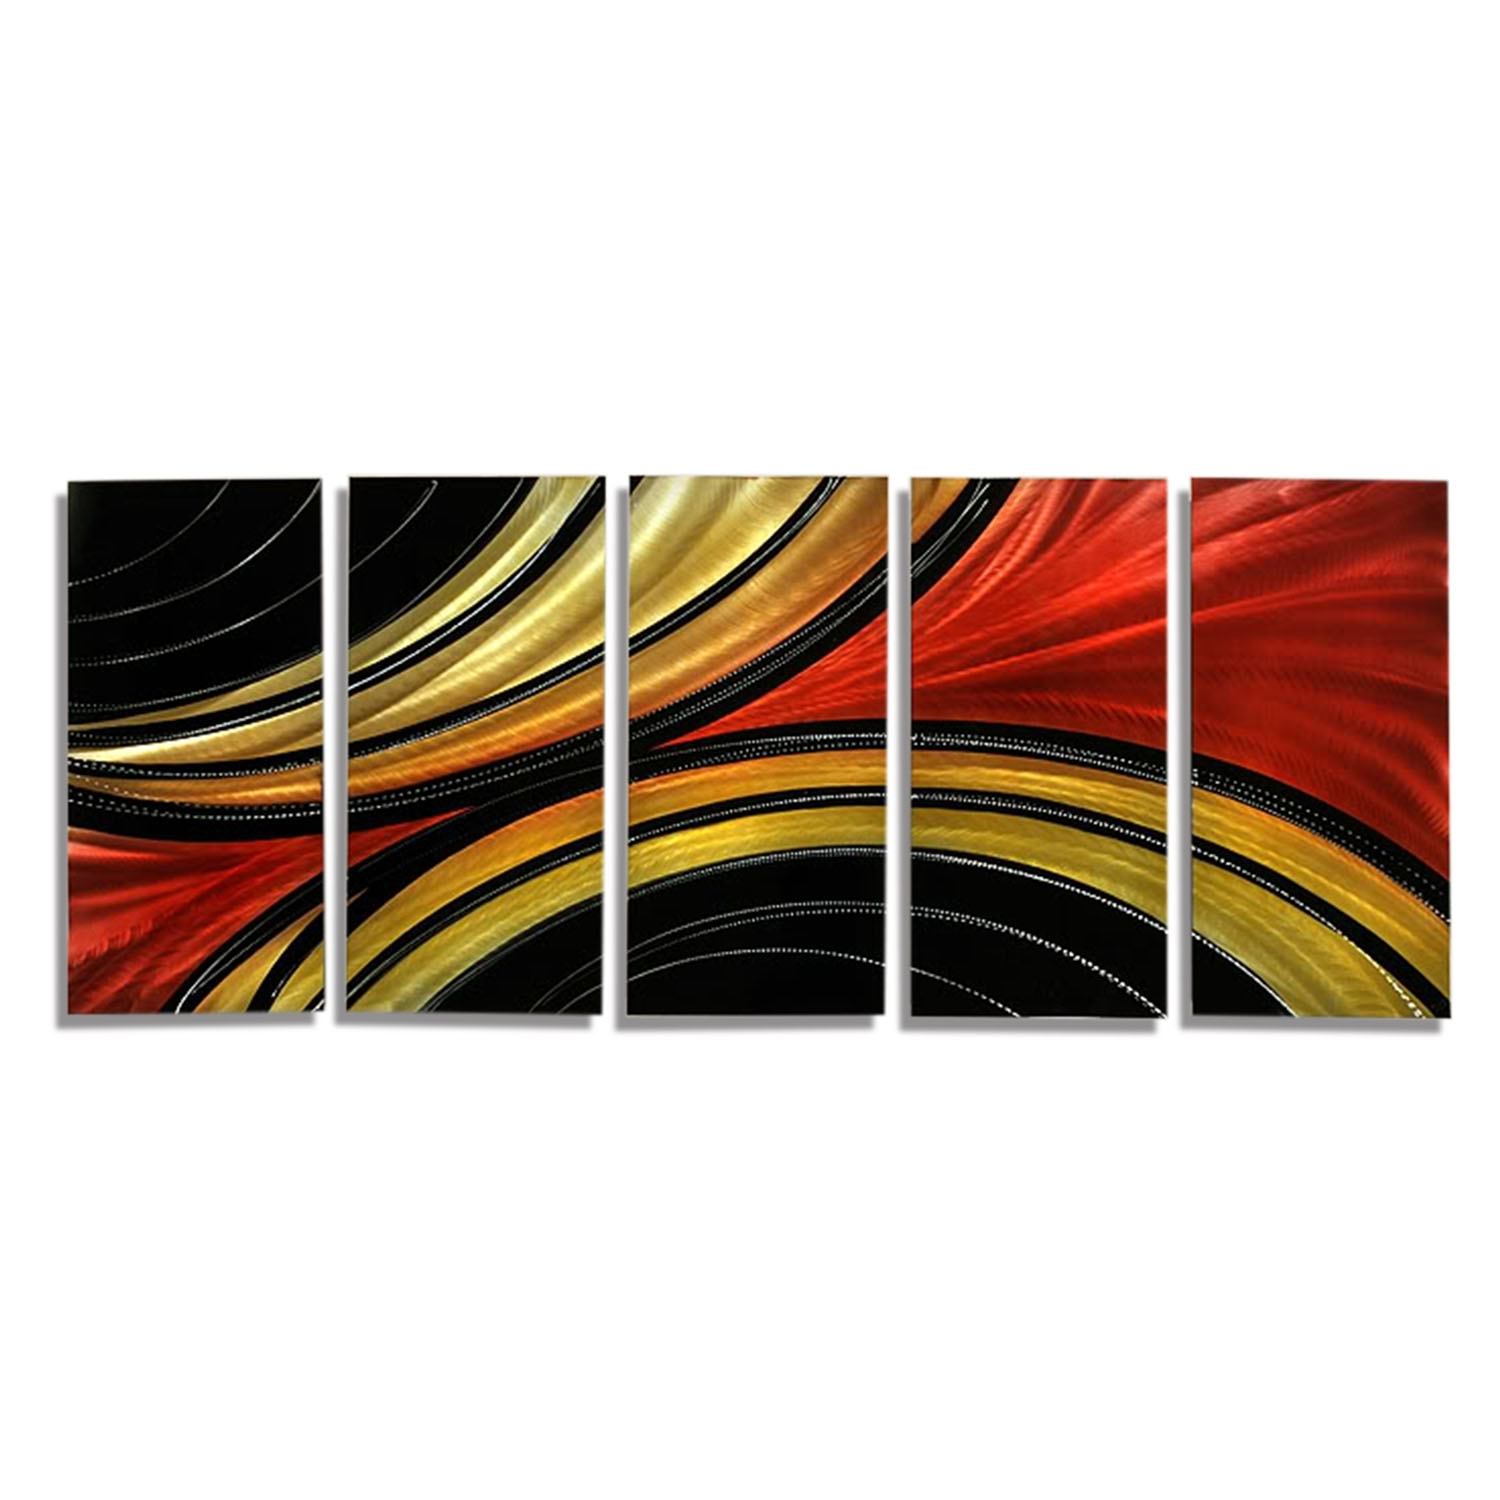 Solaris Xl – Massive Metal Abstract Red Black Gold Painting Wall With Current Black And Gold Abstract Wall Art (View 19 of 20)